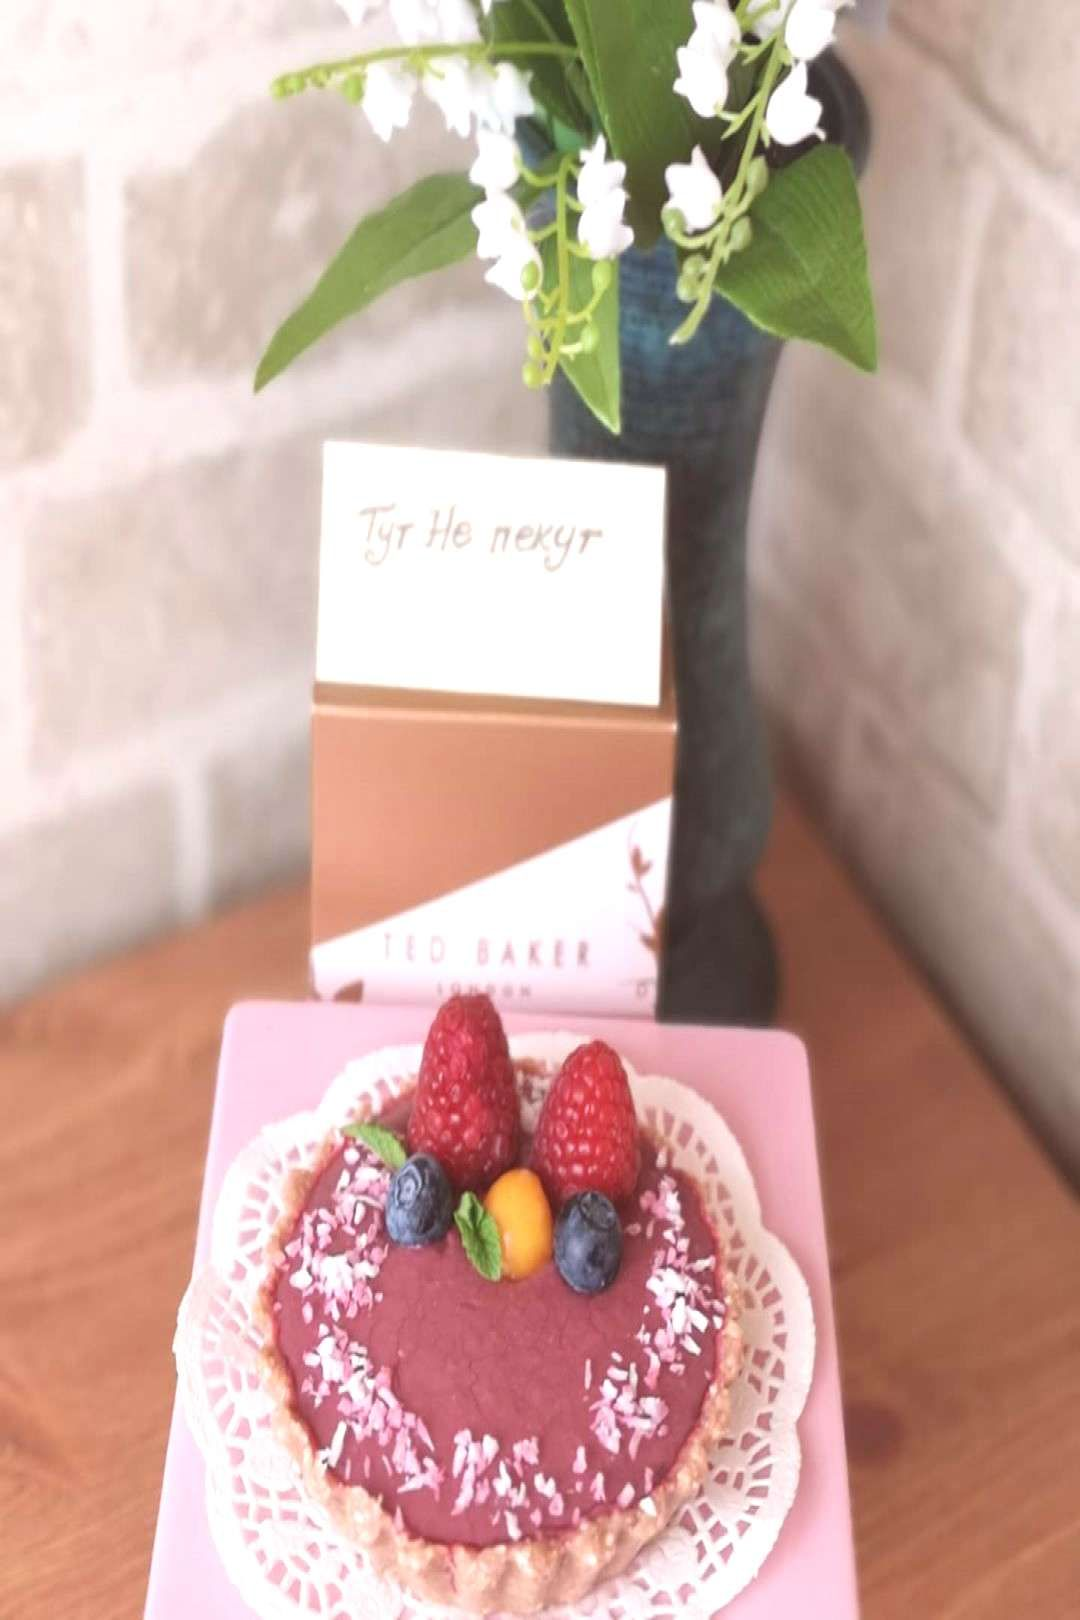 #idealbakery #rawdesserts #march #2020 #on #18 iDealBakery on March 18 2020You can find Raw desserts and more on our website.iDealBakery on March 18 2020